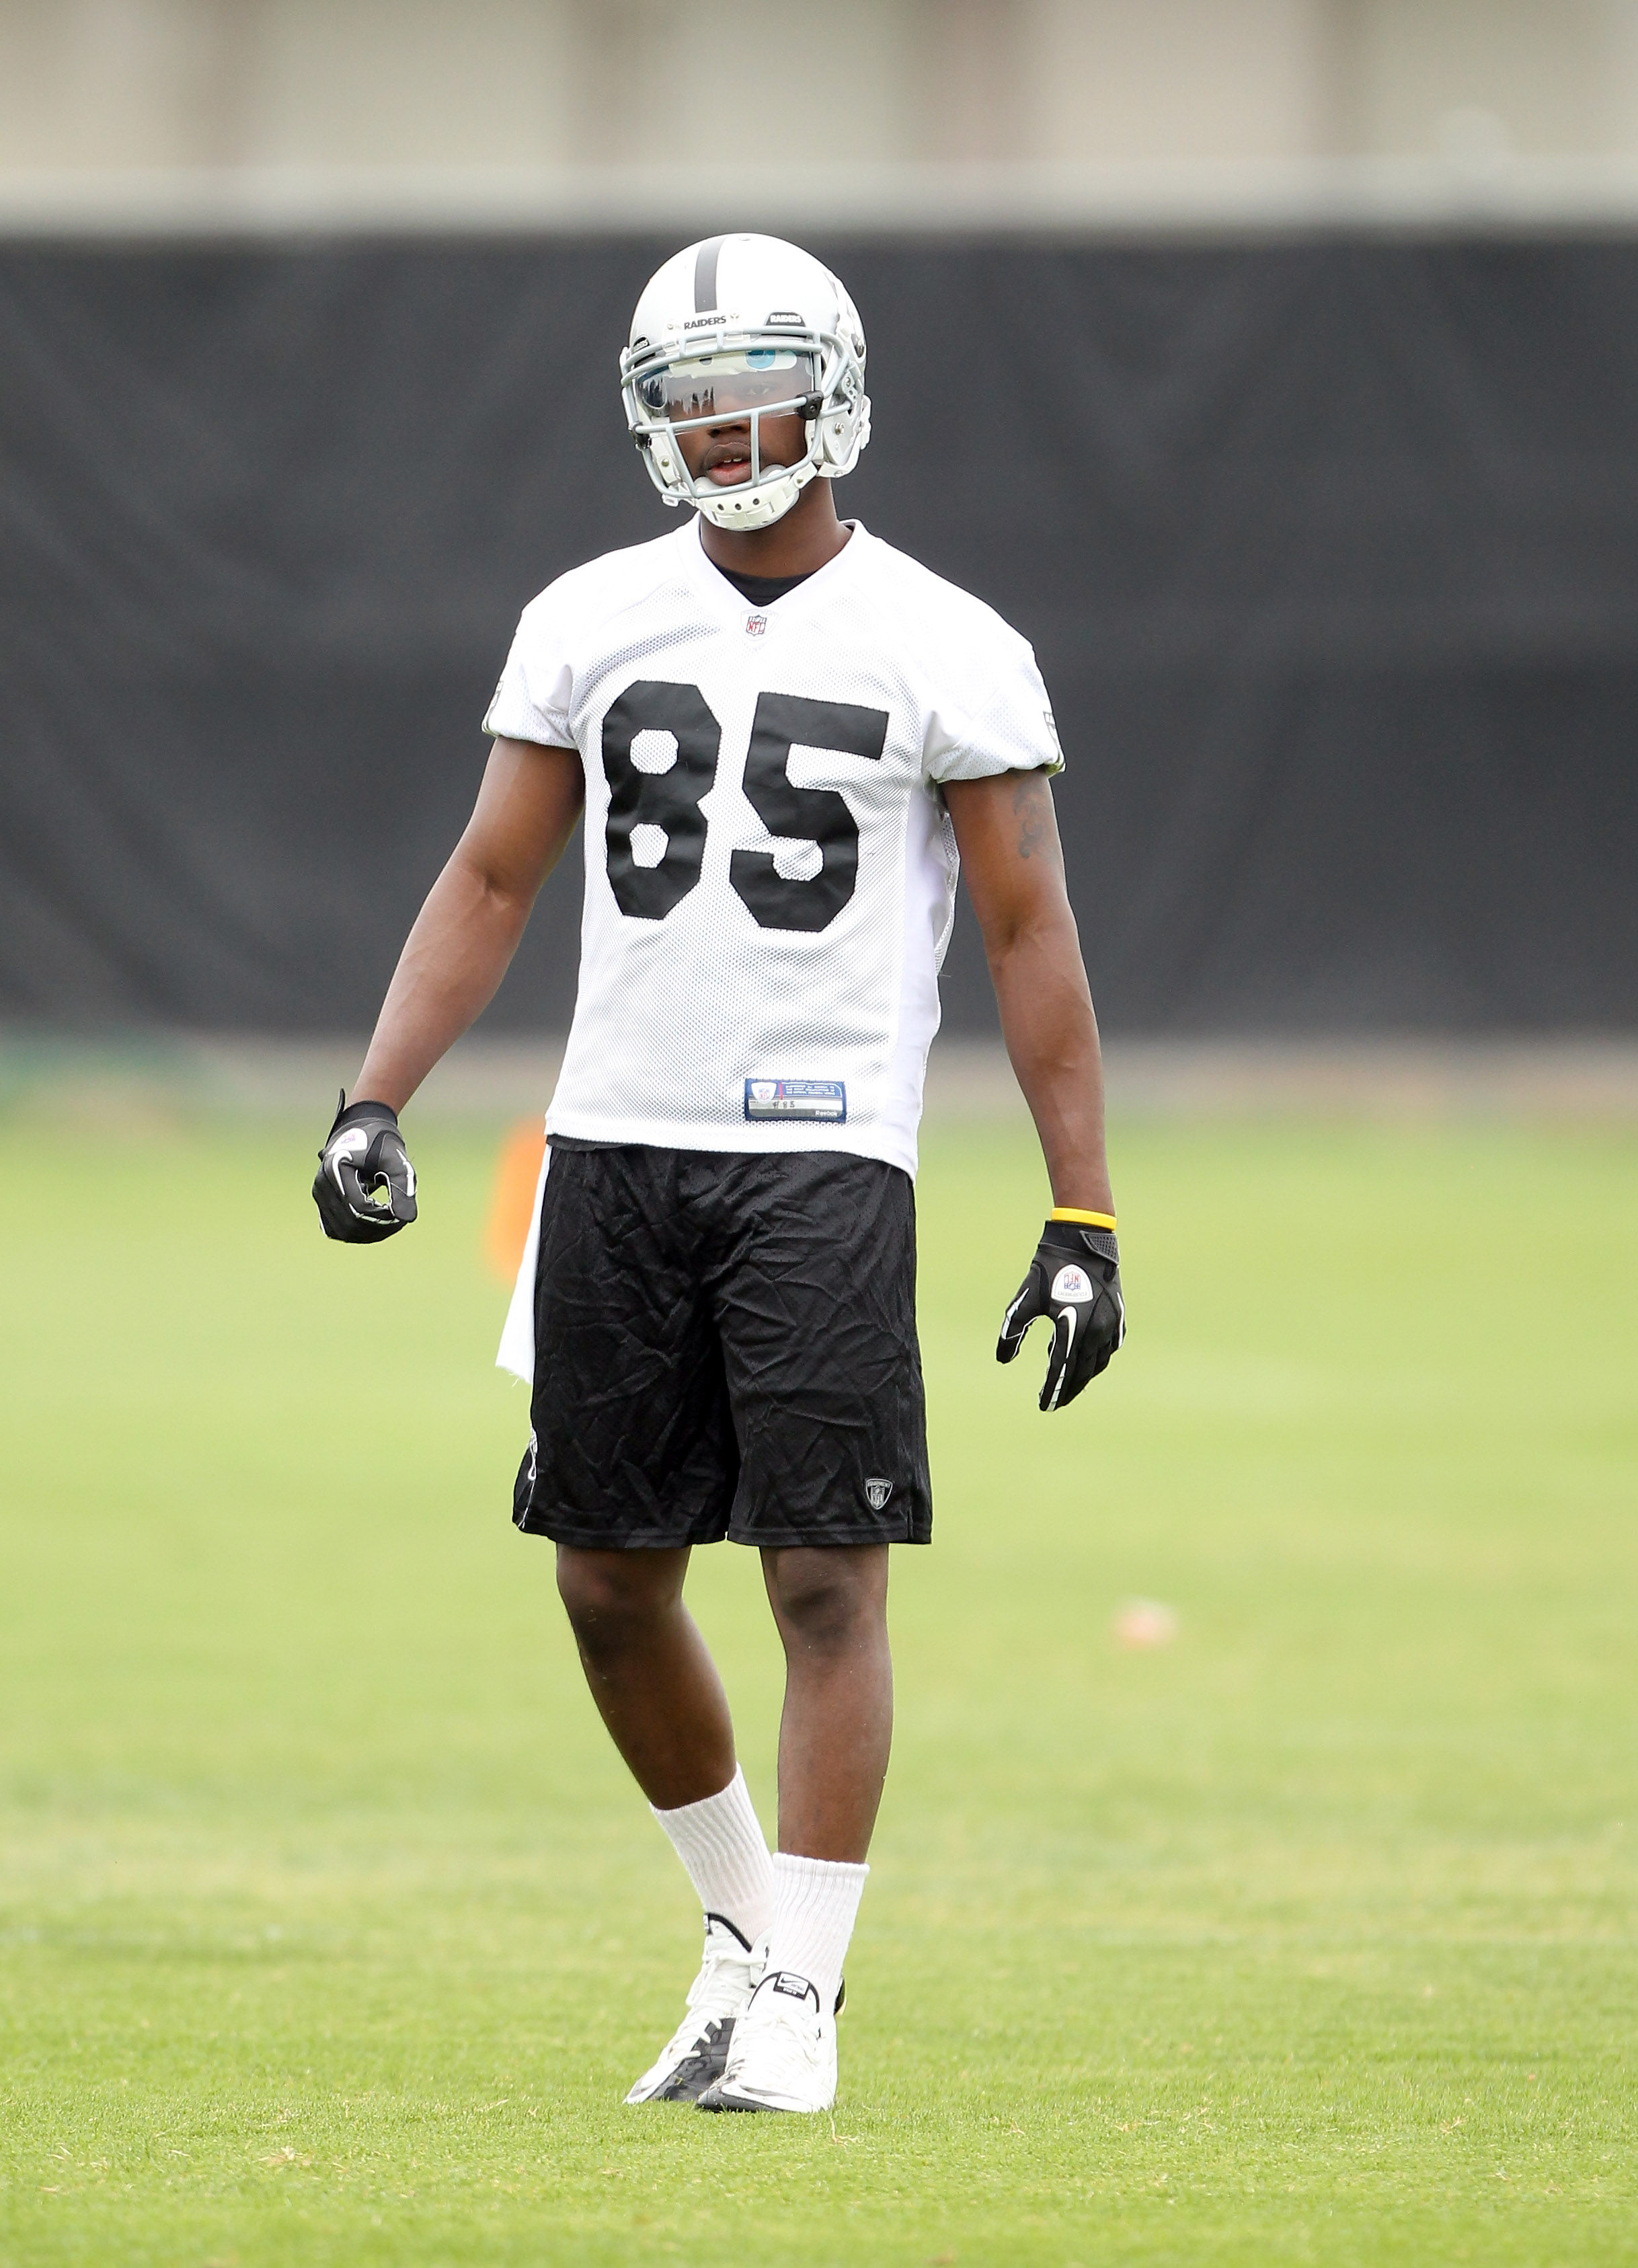 Darrius Heyward-Bey looking stronger and focused for a breakout seson